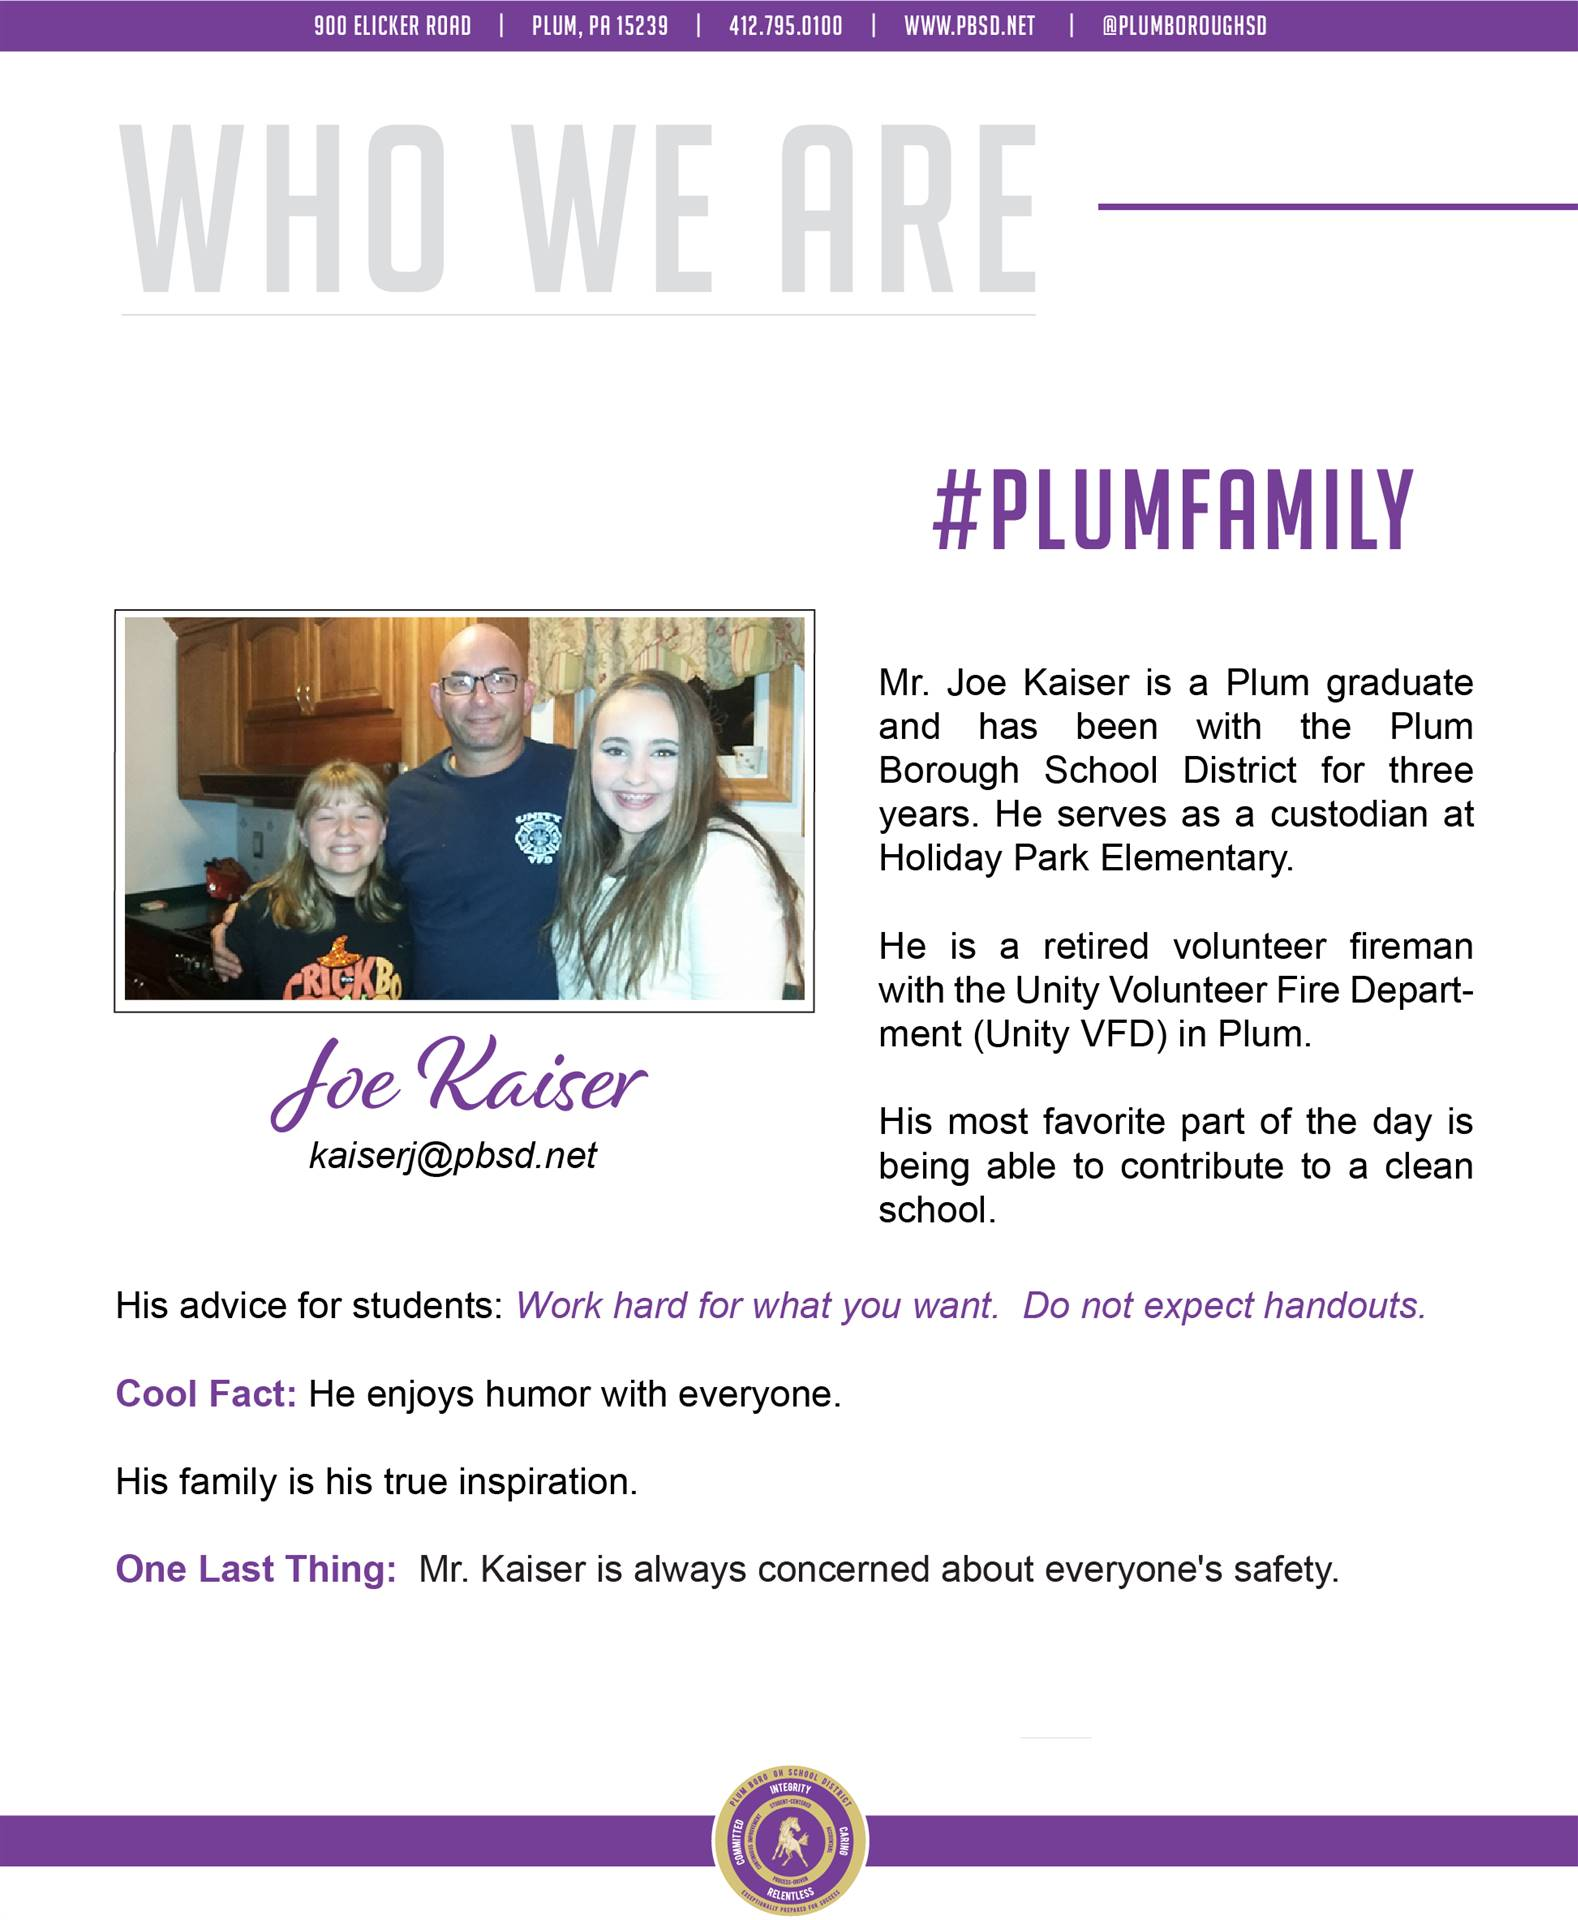 Who We Are Wednesday features Joe Kaiser.